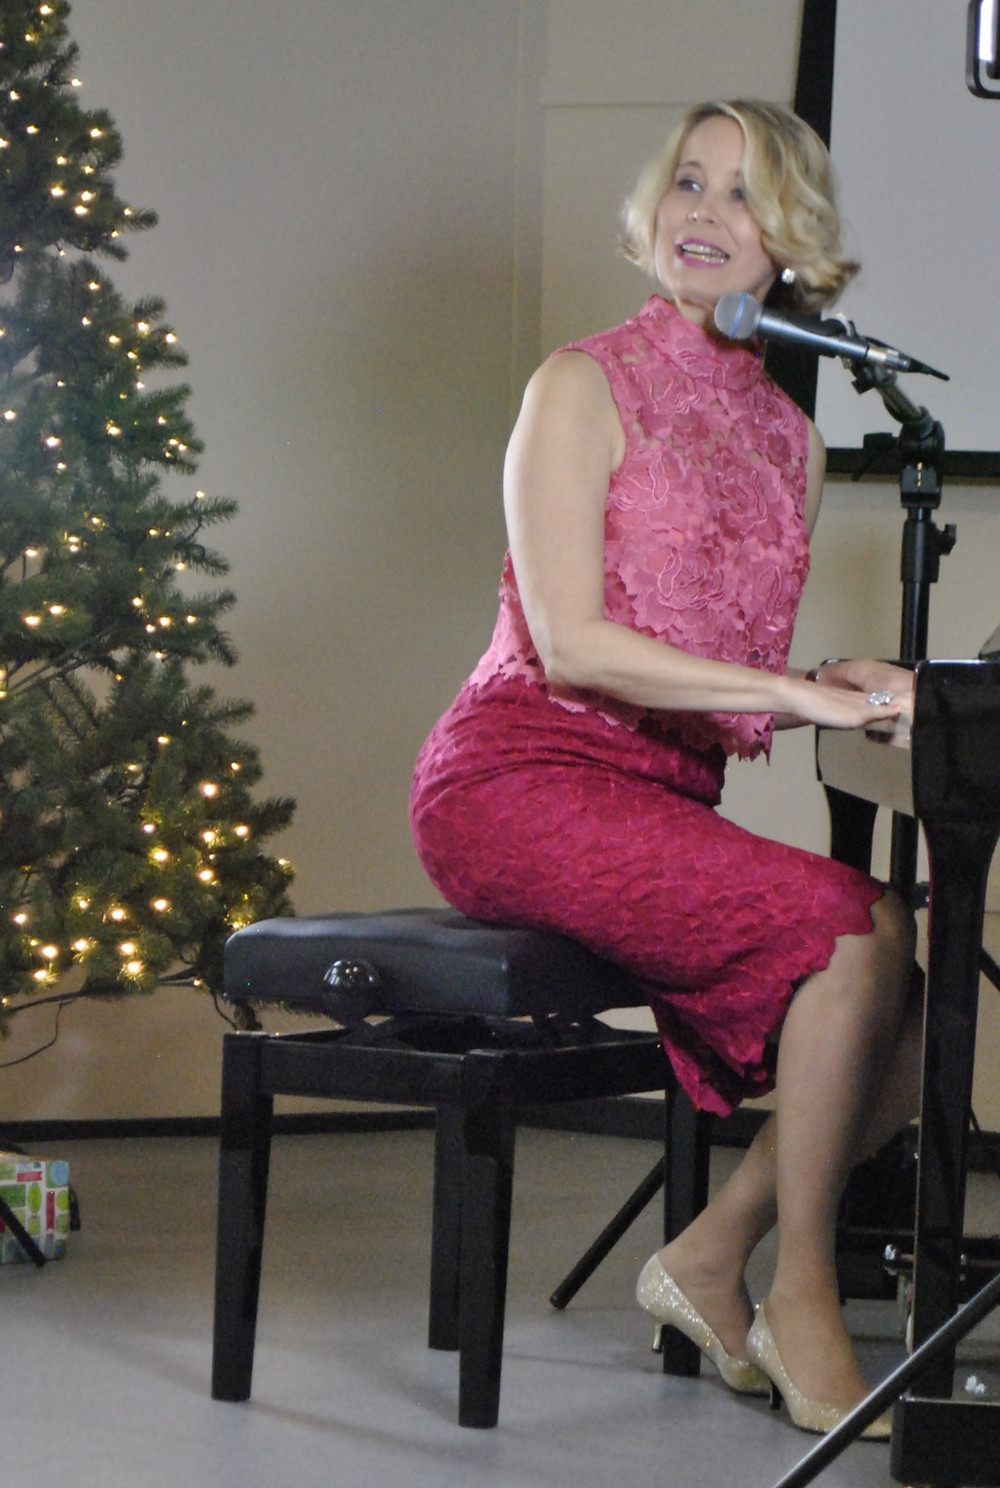 Karen Jacobsen singing I Believe You at Broken to Brilliant's Christmas in July hightea and launch of the audiobook Terror to Triumph